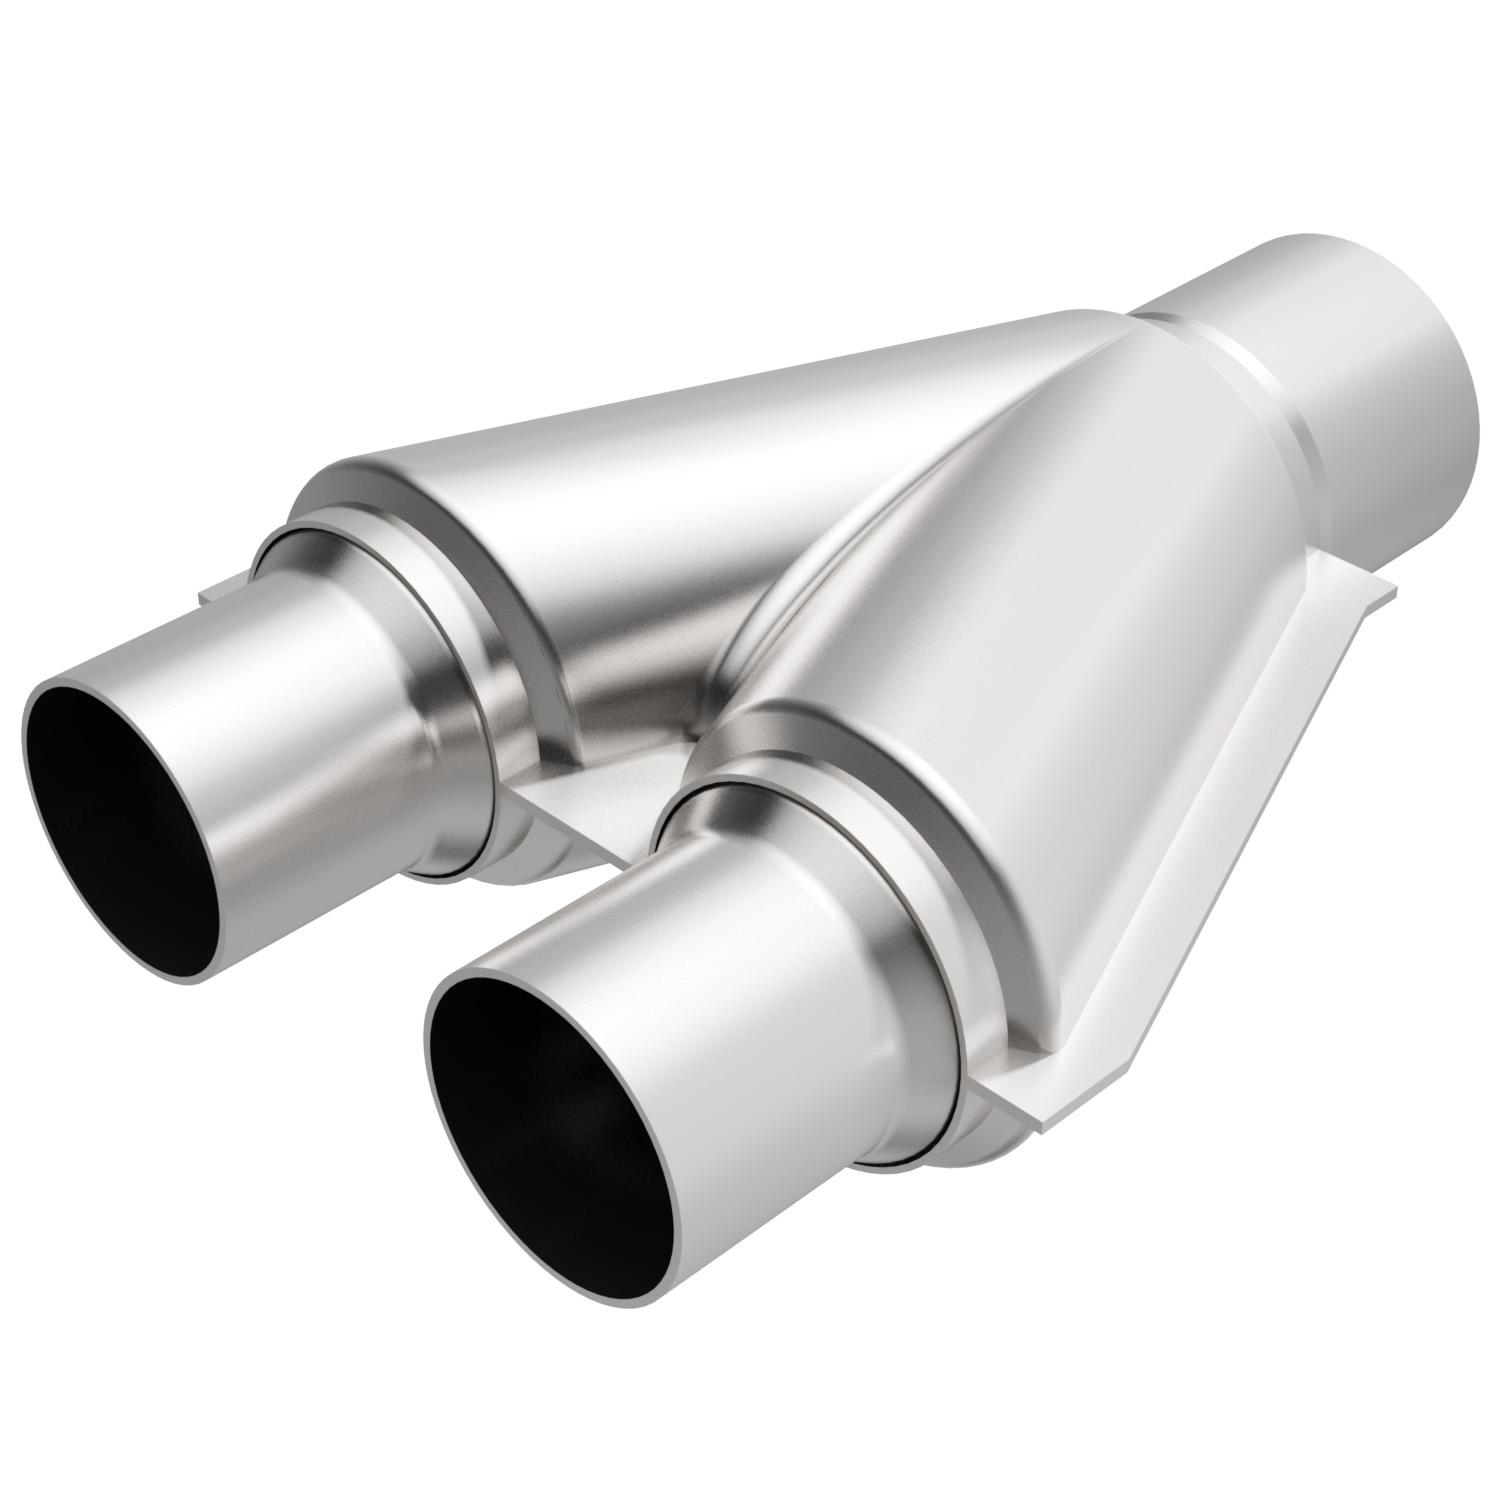 exhaust-y-pipe-2-50-2-50